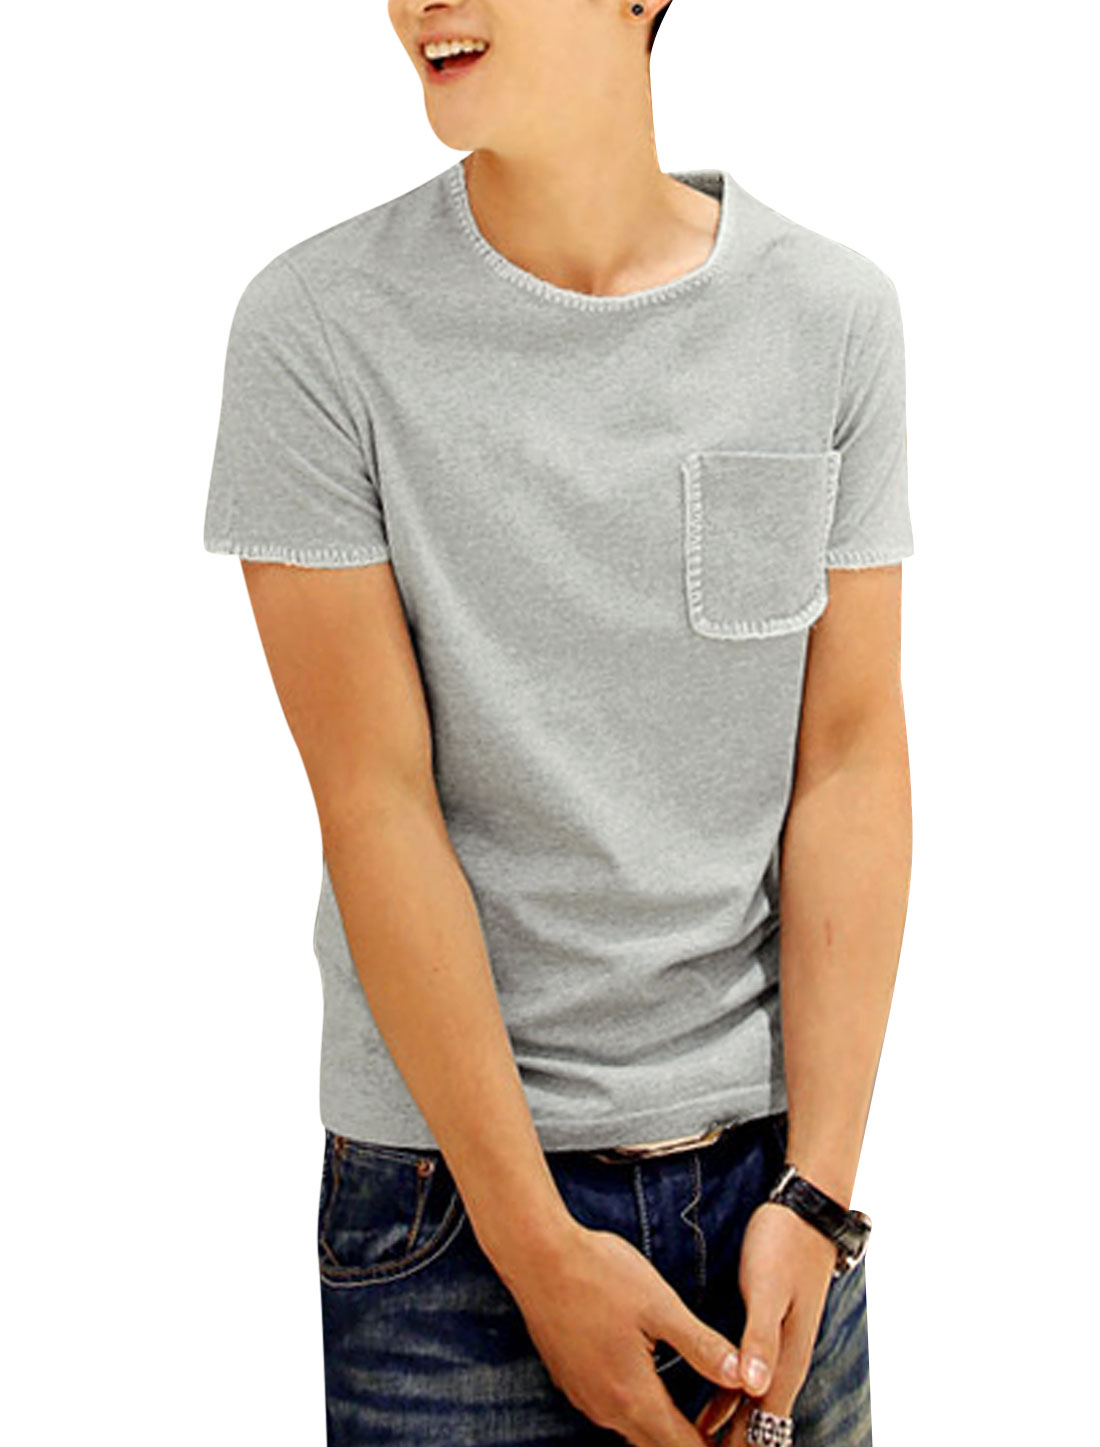 Men Chic One Breast Pocket Stitched Detail T-Shirt Light Gray S